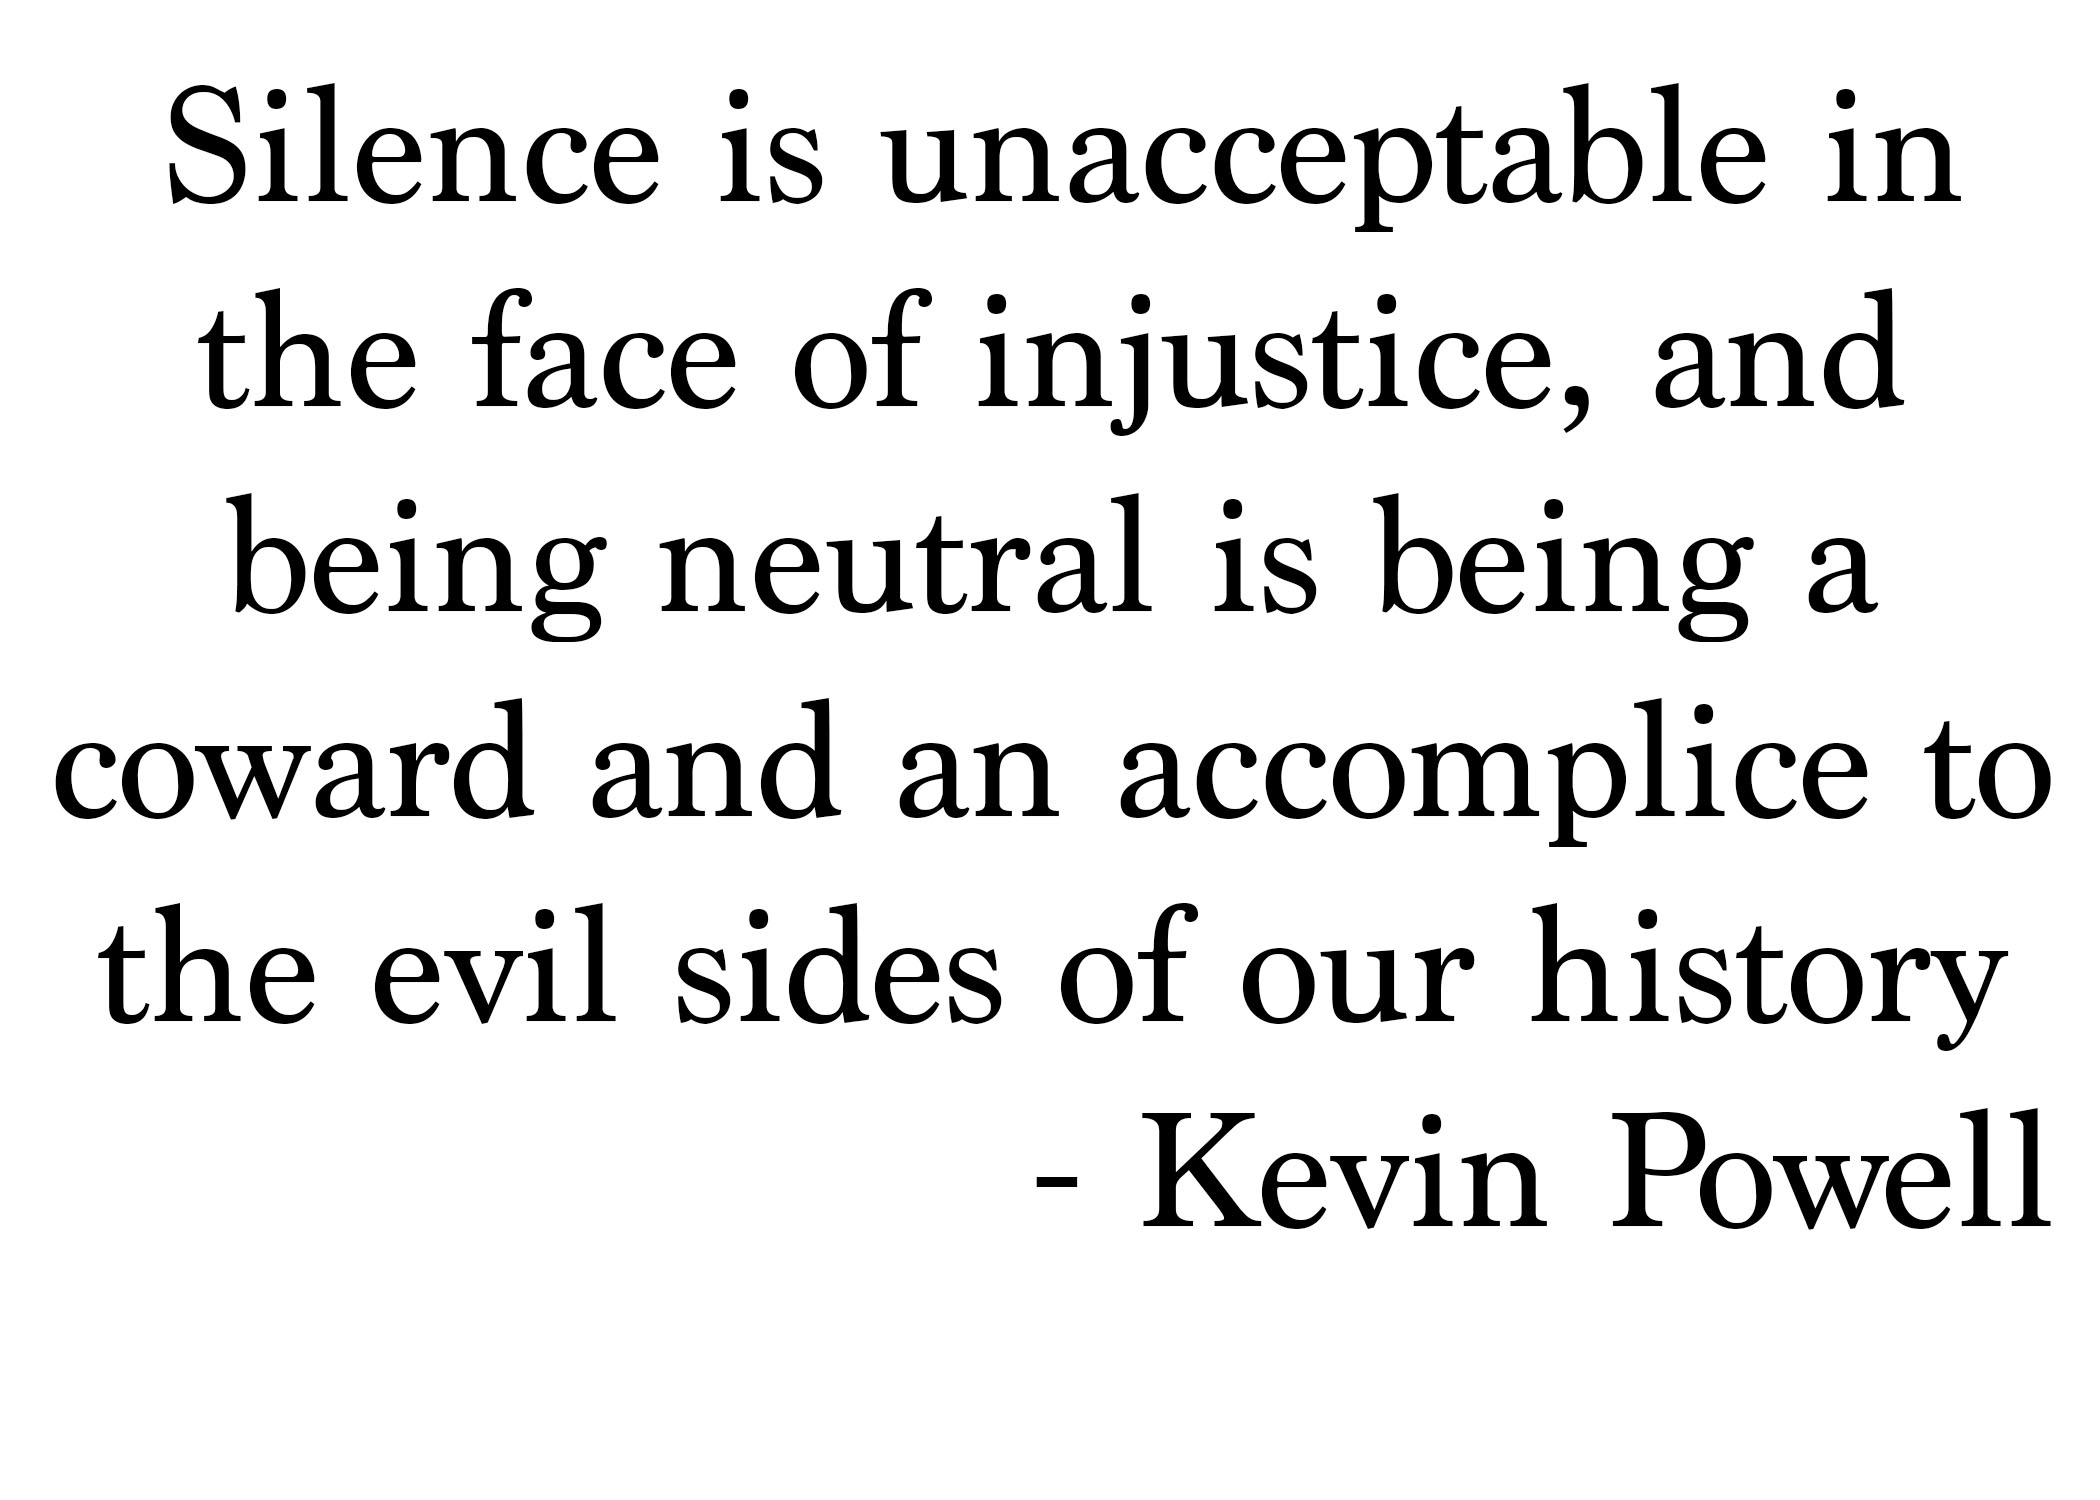 Silence is unacceptable in the face of injustice, and being neutral is being a coward and an accomplice to the evil sides of our history.